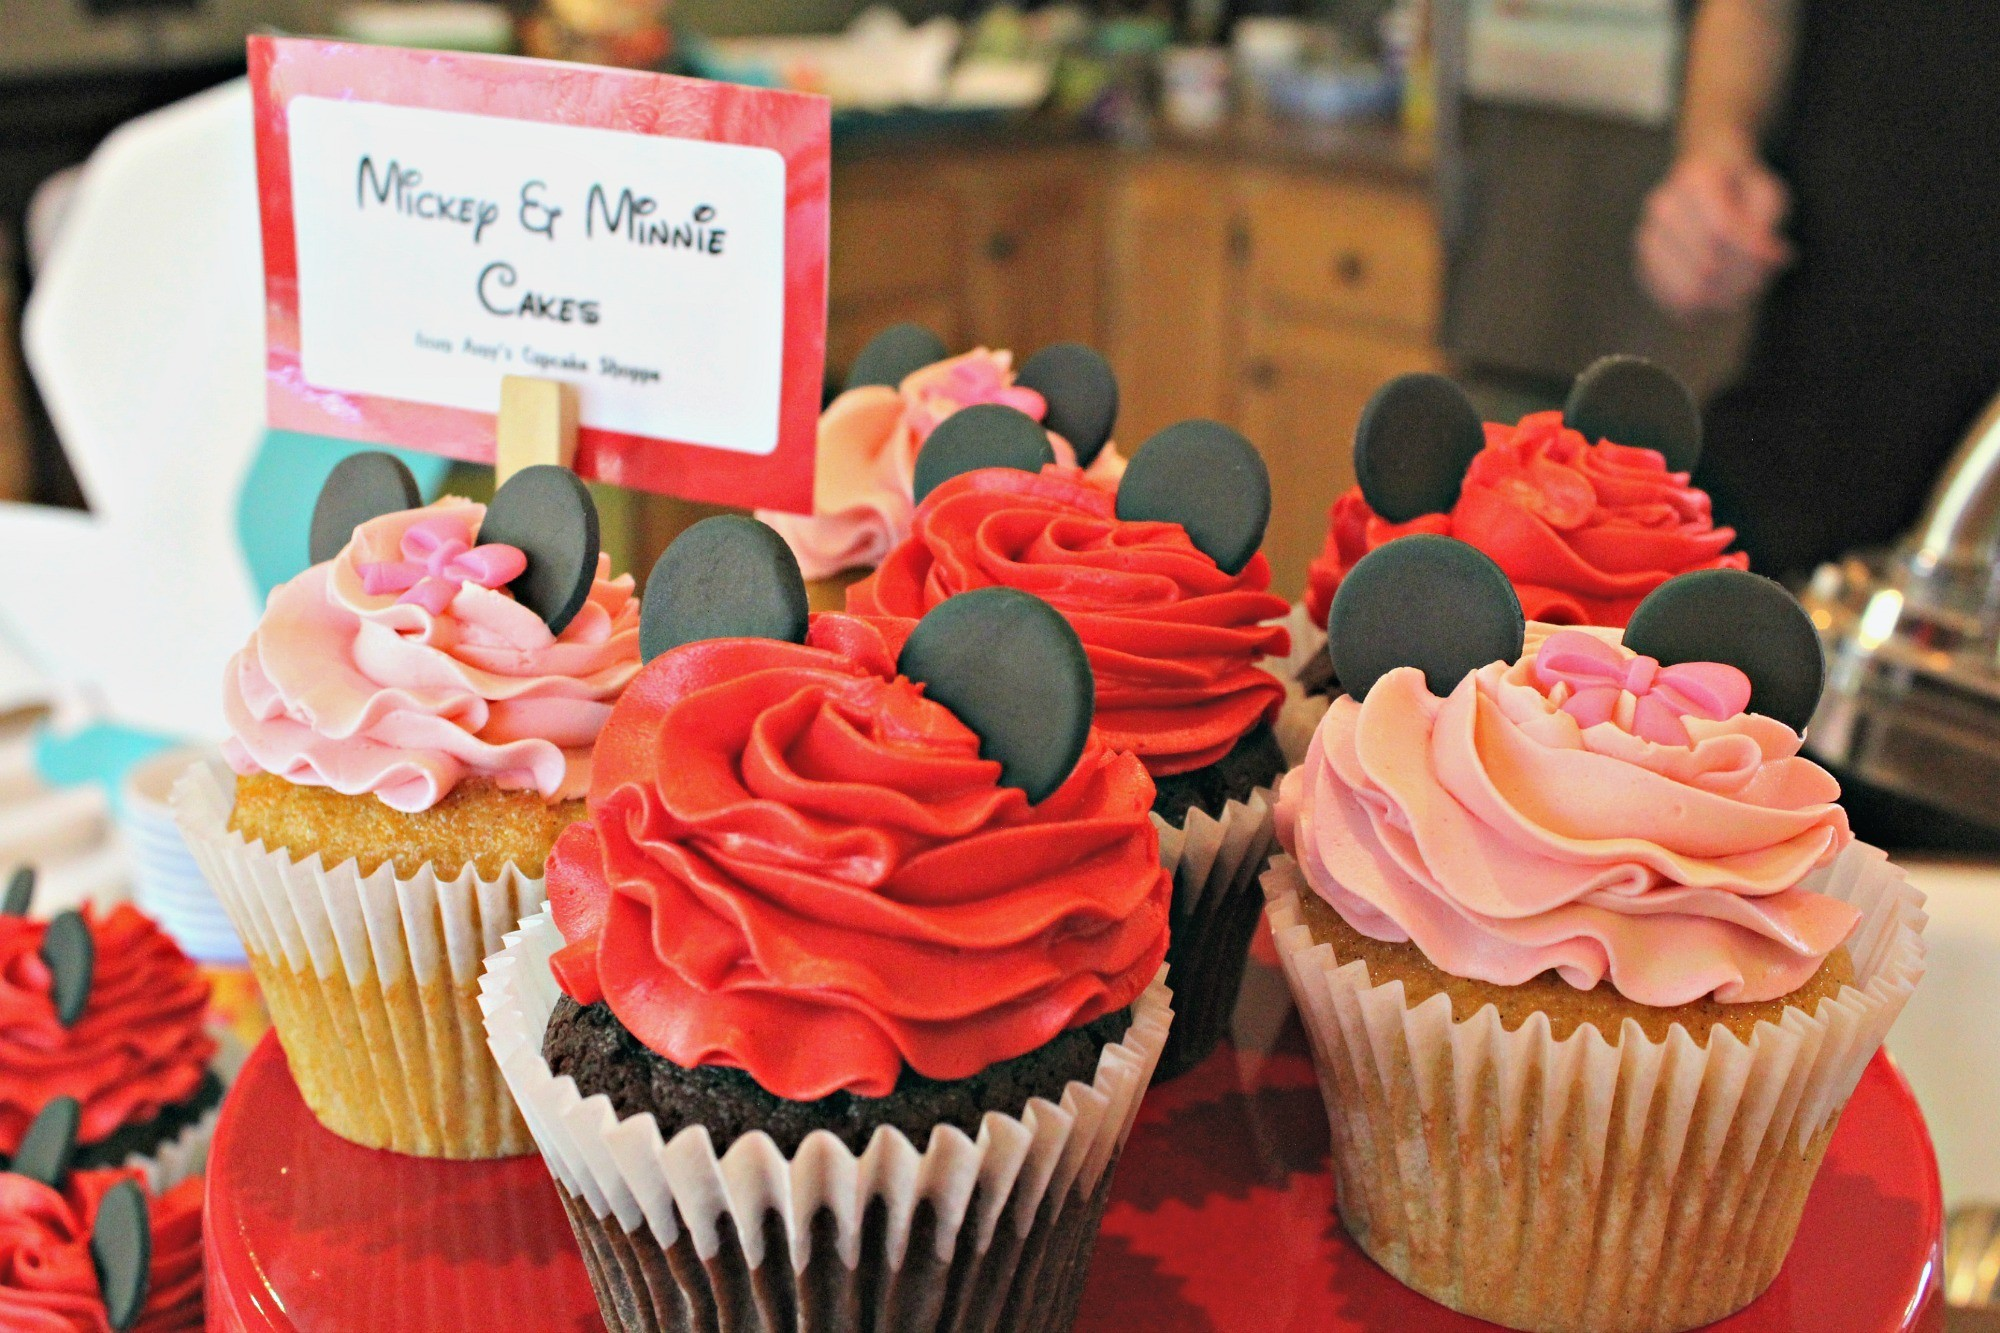 How to Throw a Disney Party with Minimal Crafting Skills: Mickey and Minnie Mouse Cupcakes from Amy's Cupcake Shoppe